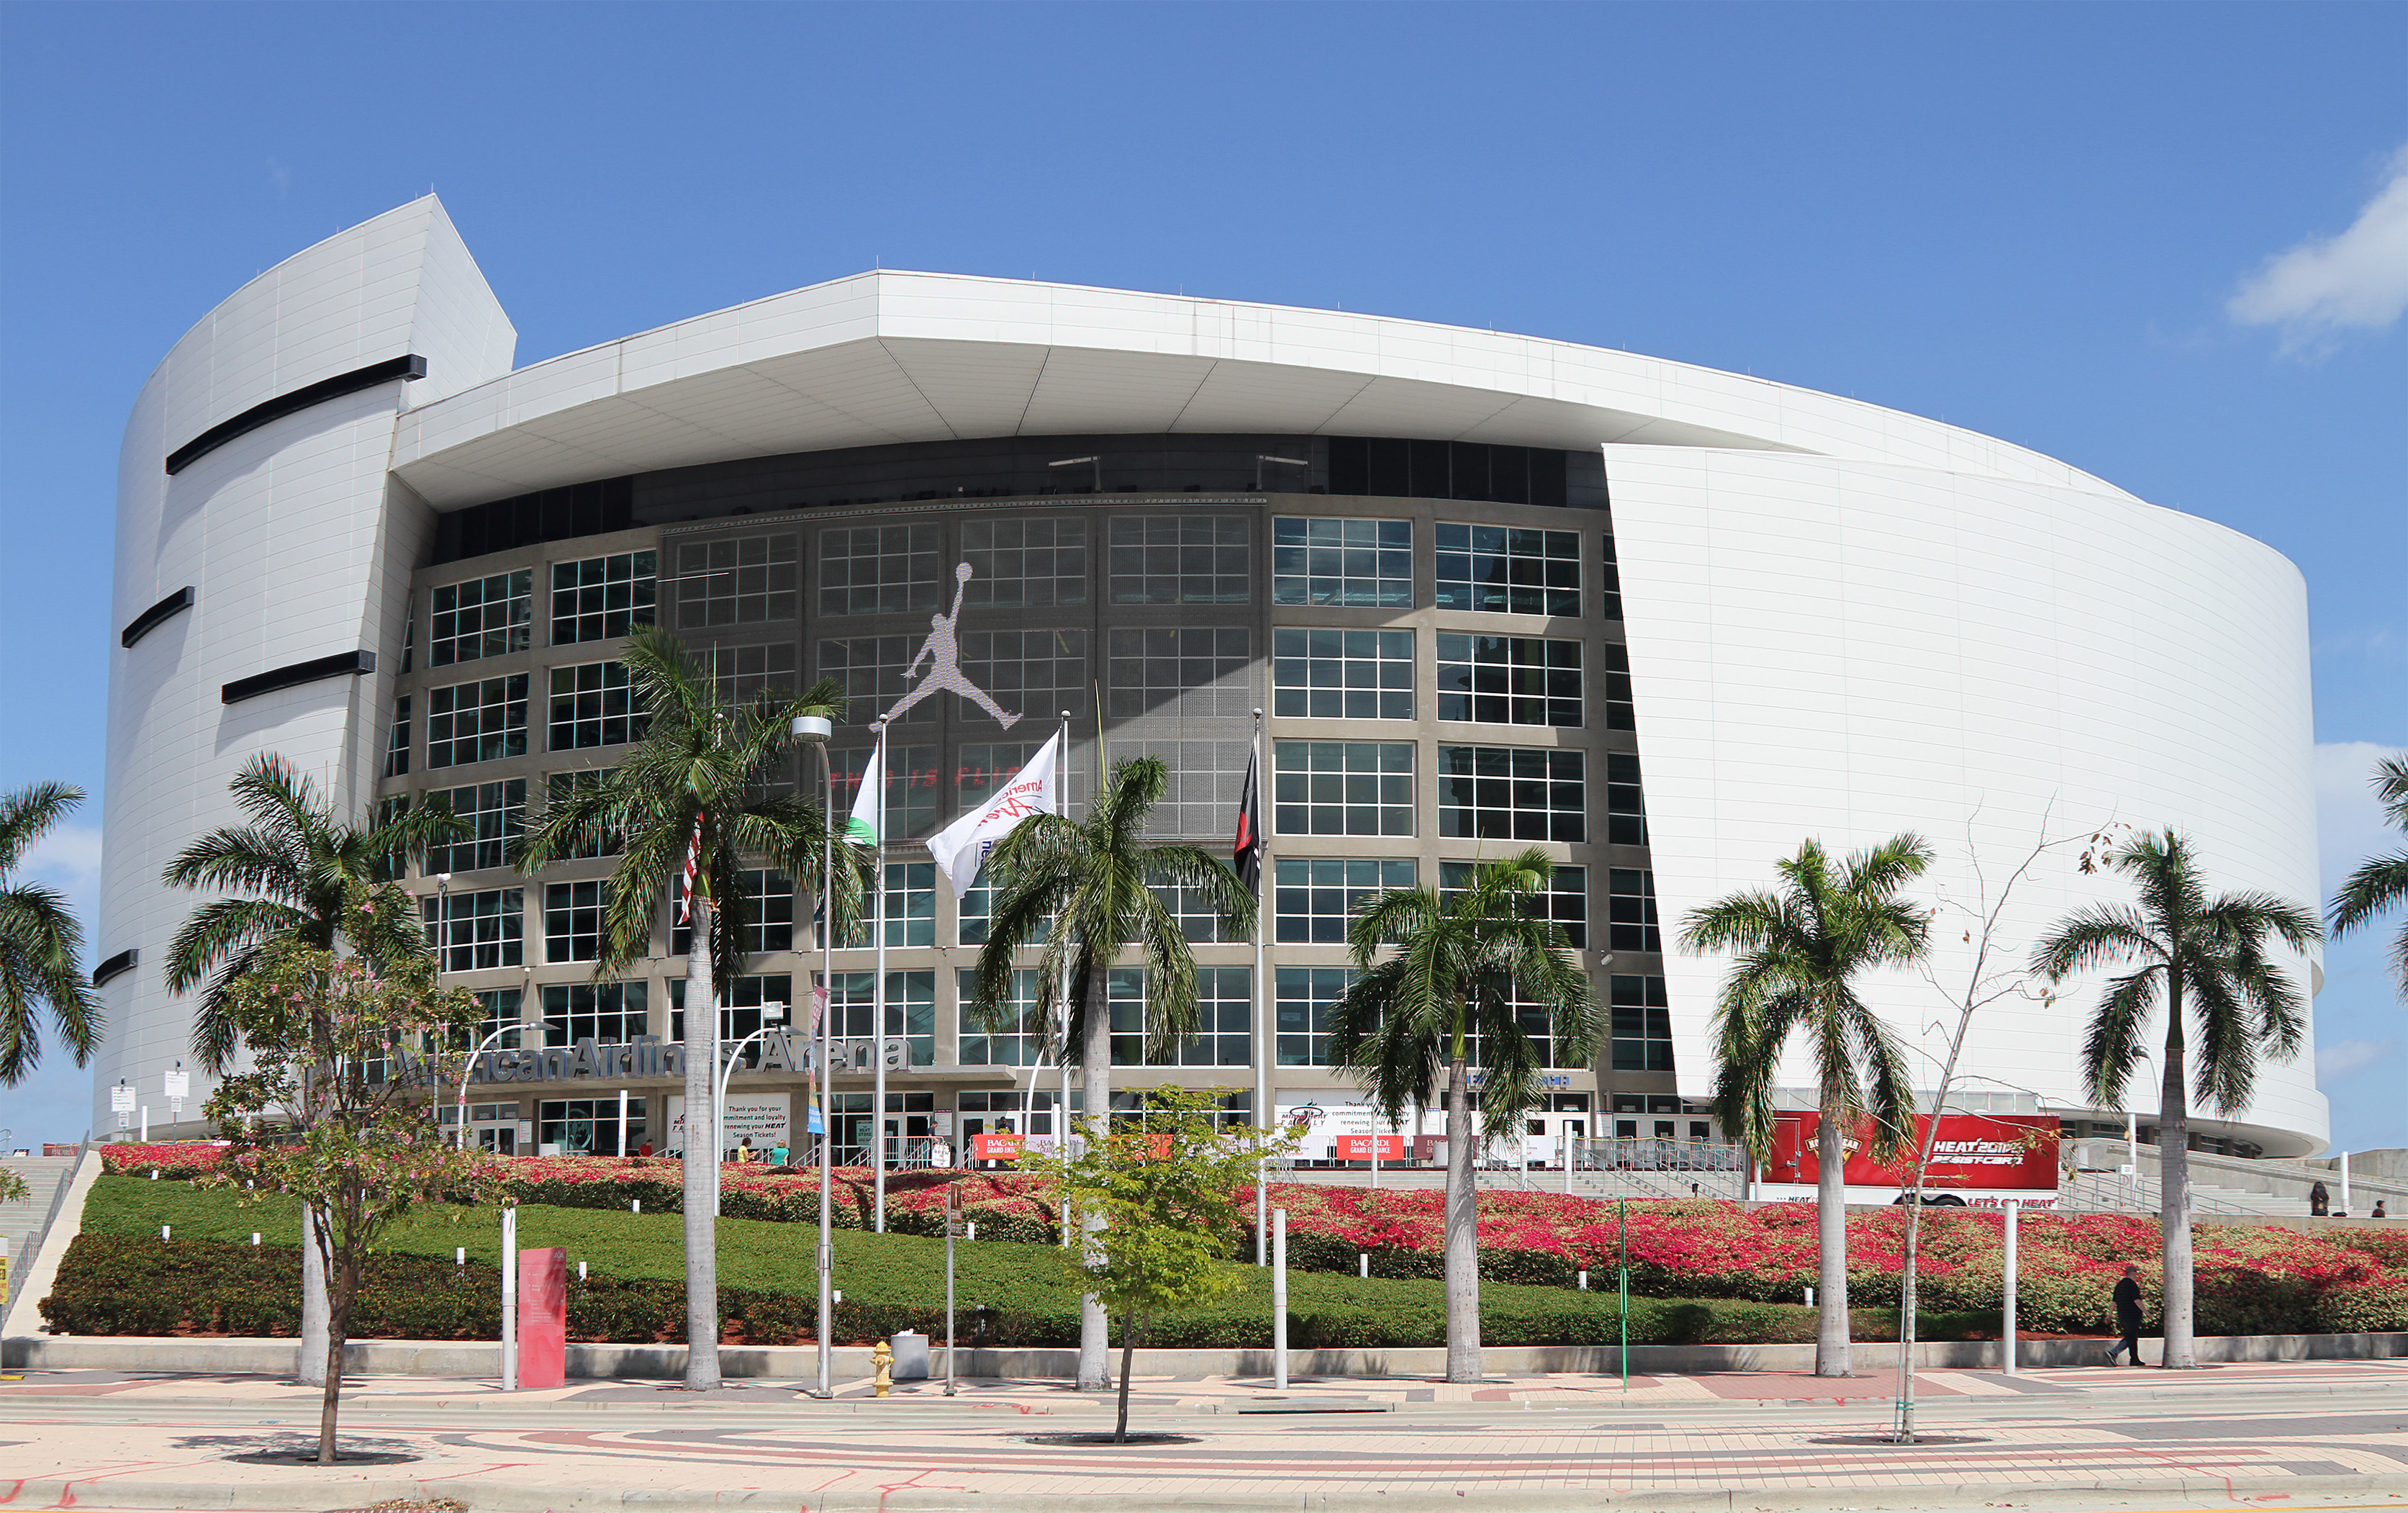 Miami Beach Arena